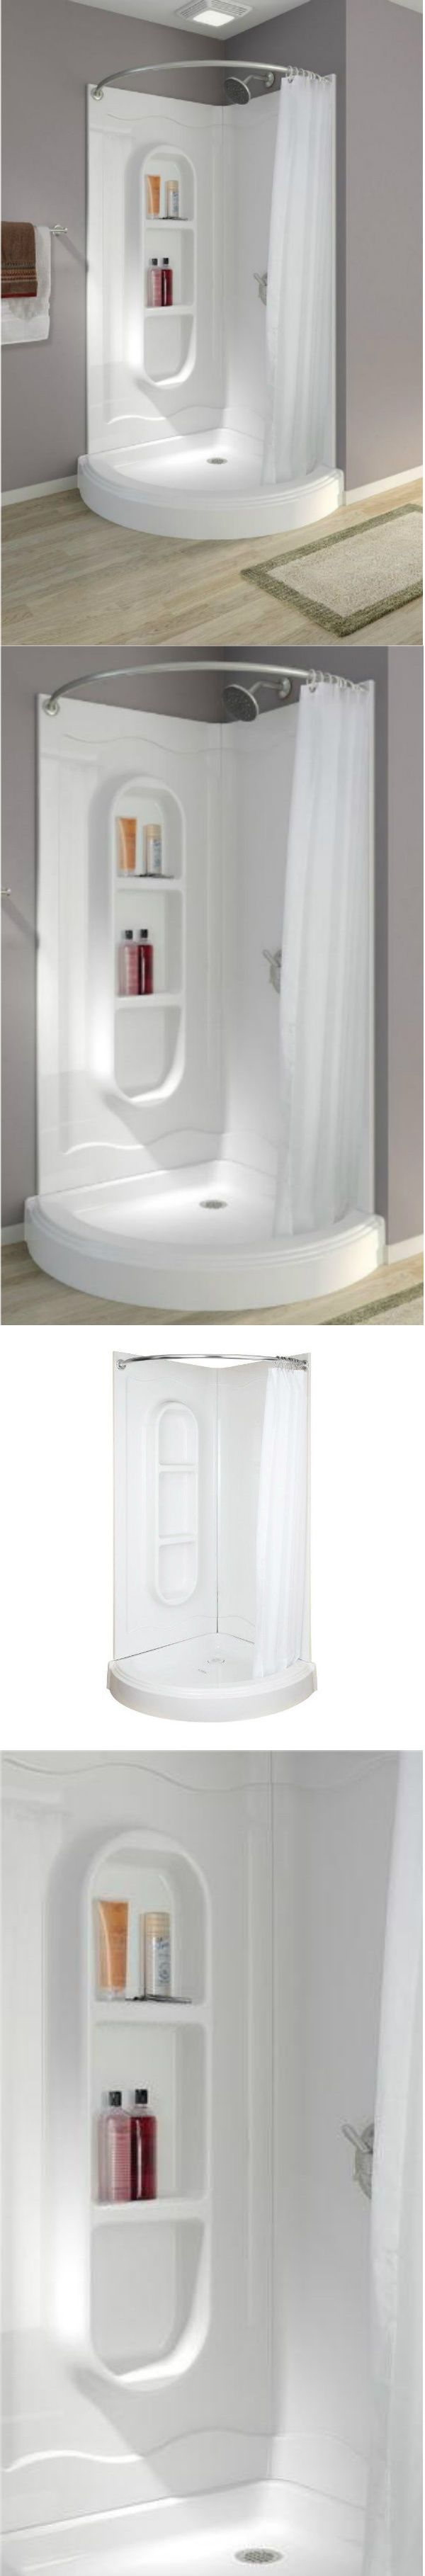 25 Best Ideas About One Piece Shower Stall On Pinterest Shower Guides Sho